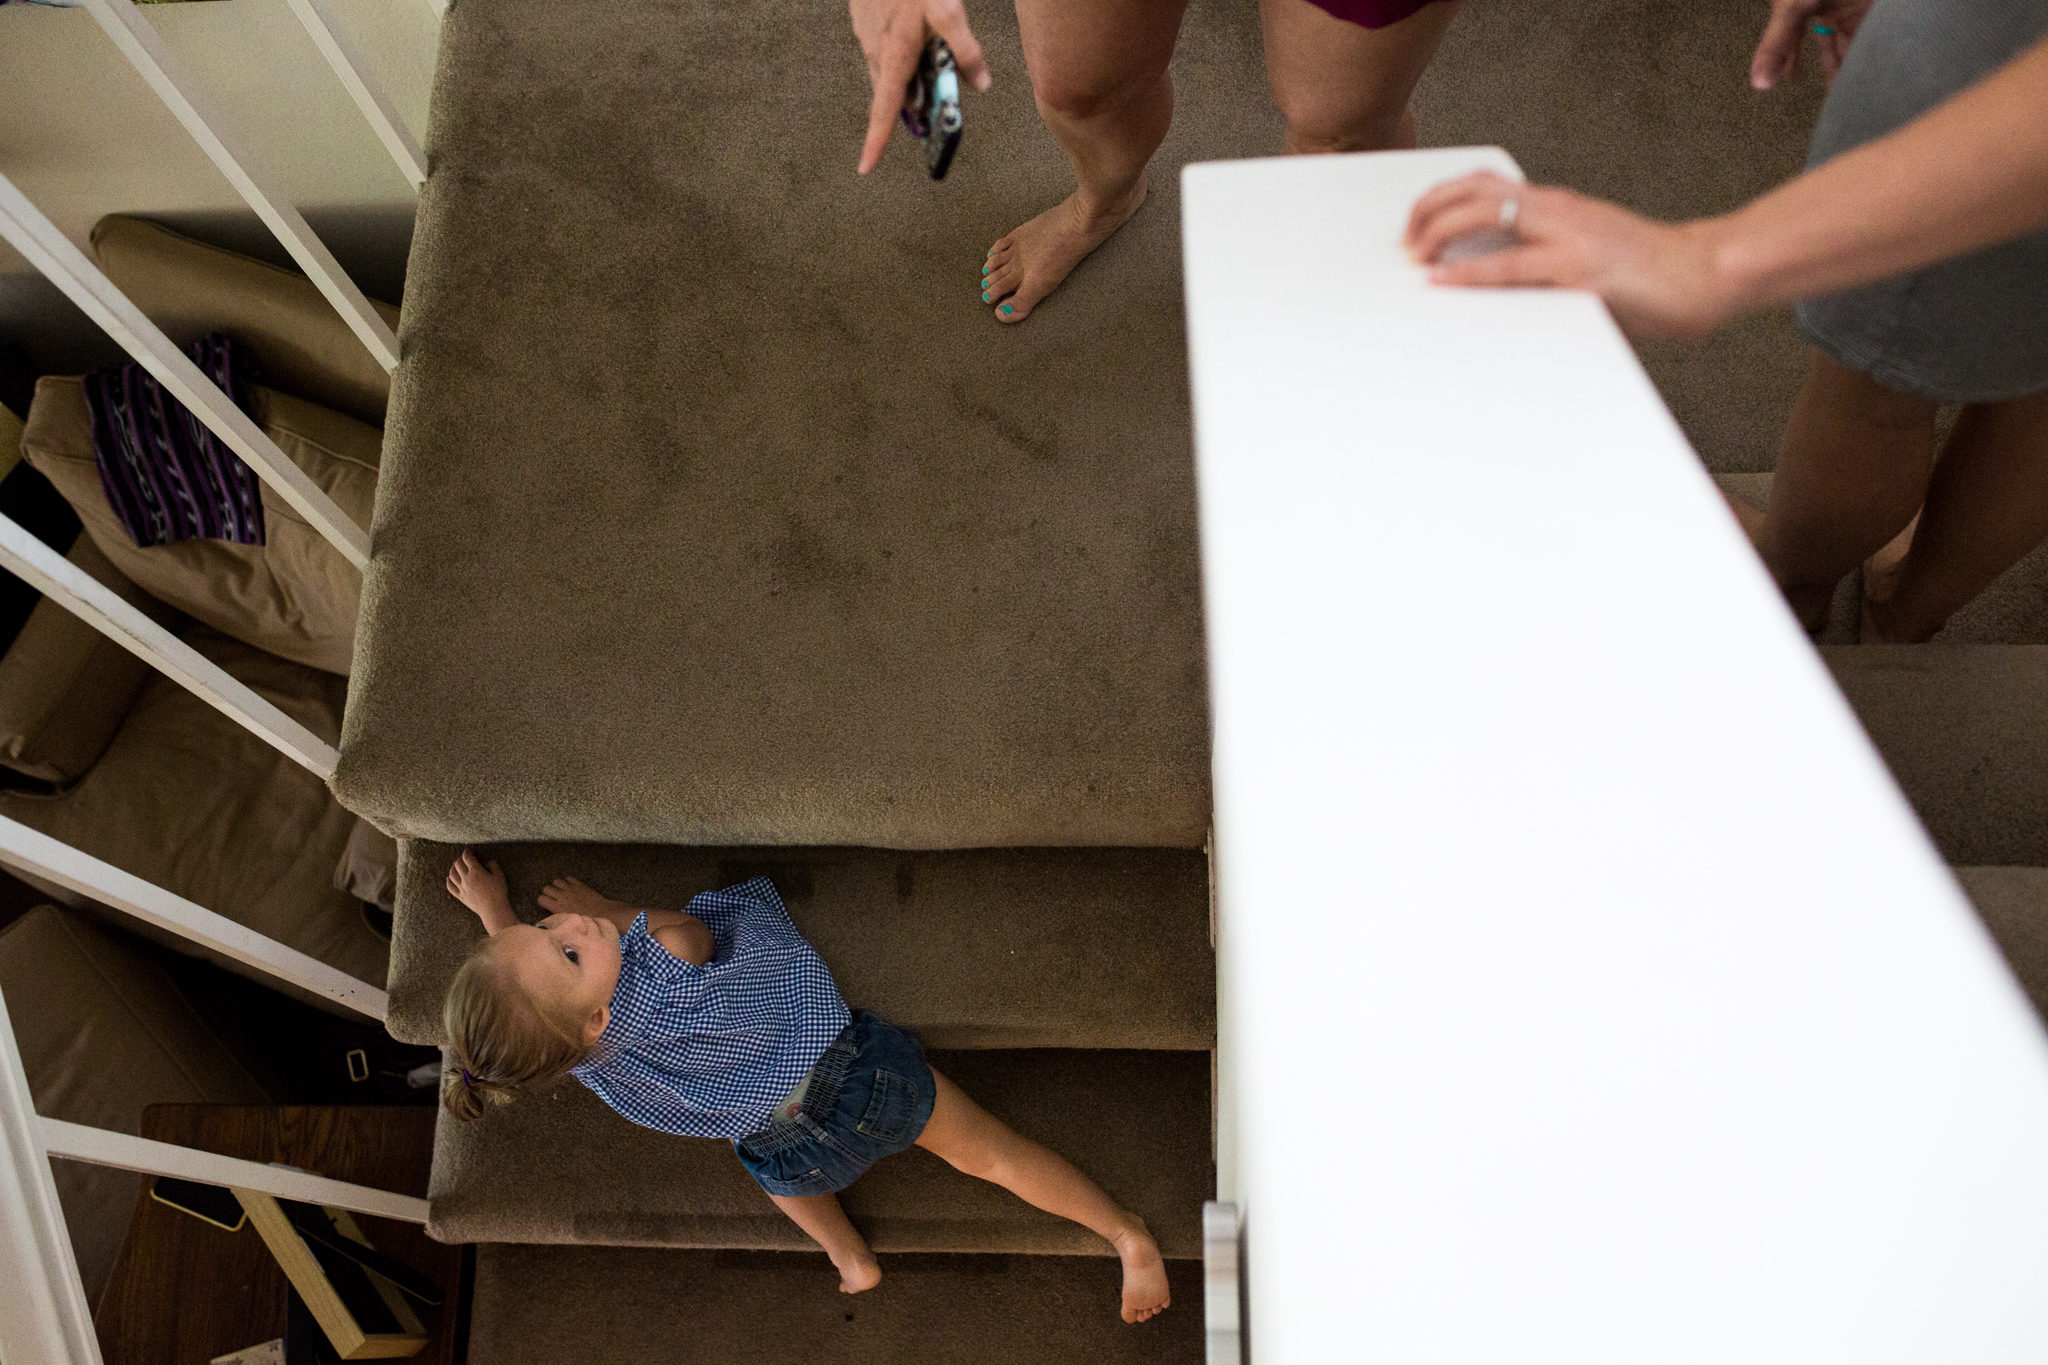 Lawren Rose Photography captures a funny moment where a little girl is going down the stairs backwards and her moms hand is pointing at her during a Day In The Life session in Farmers Branch, Texas